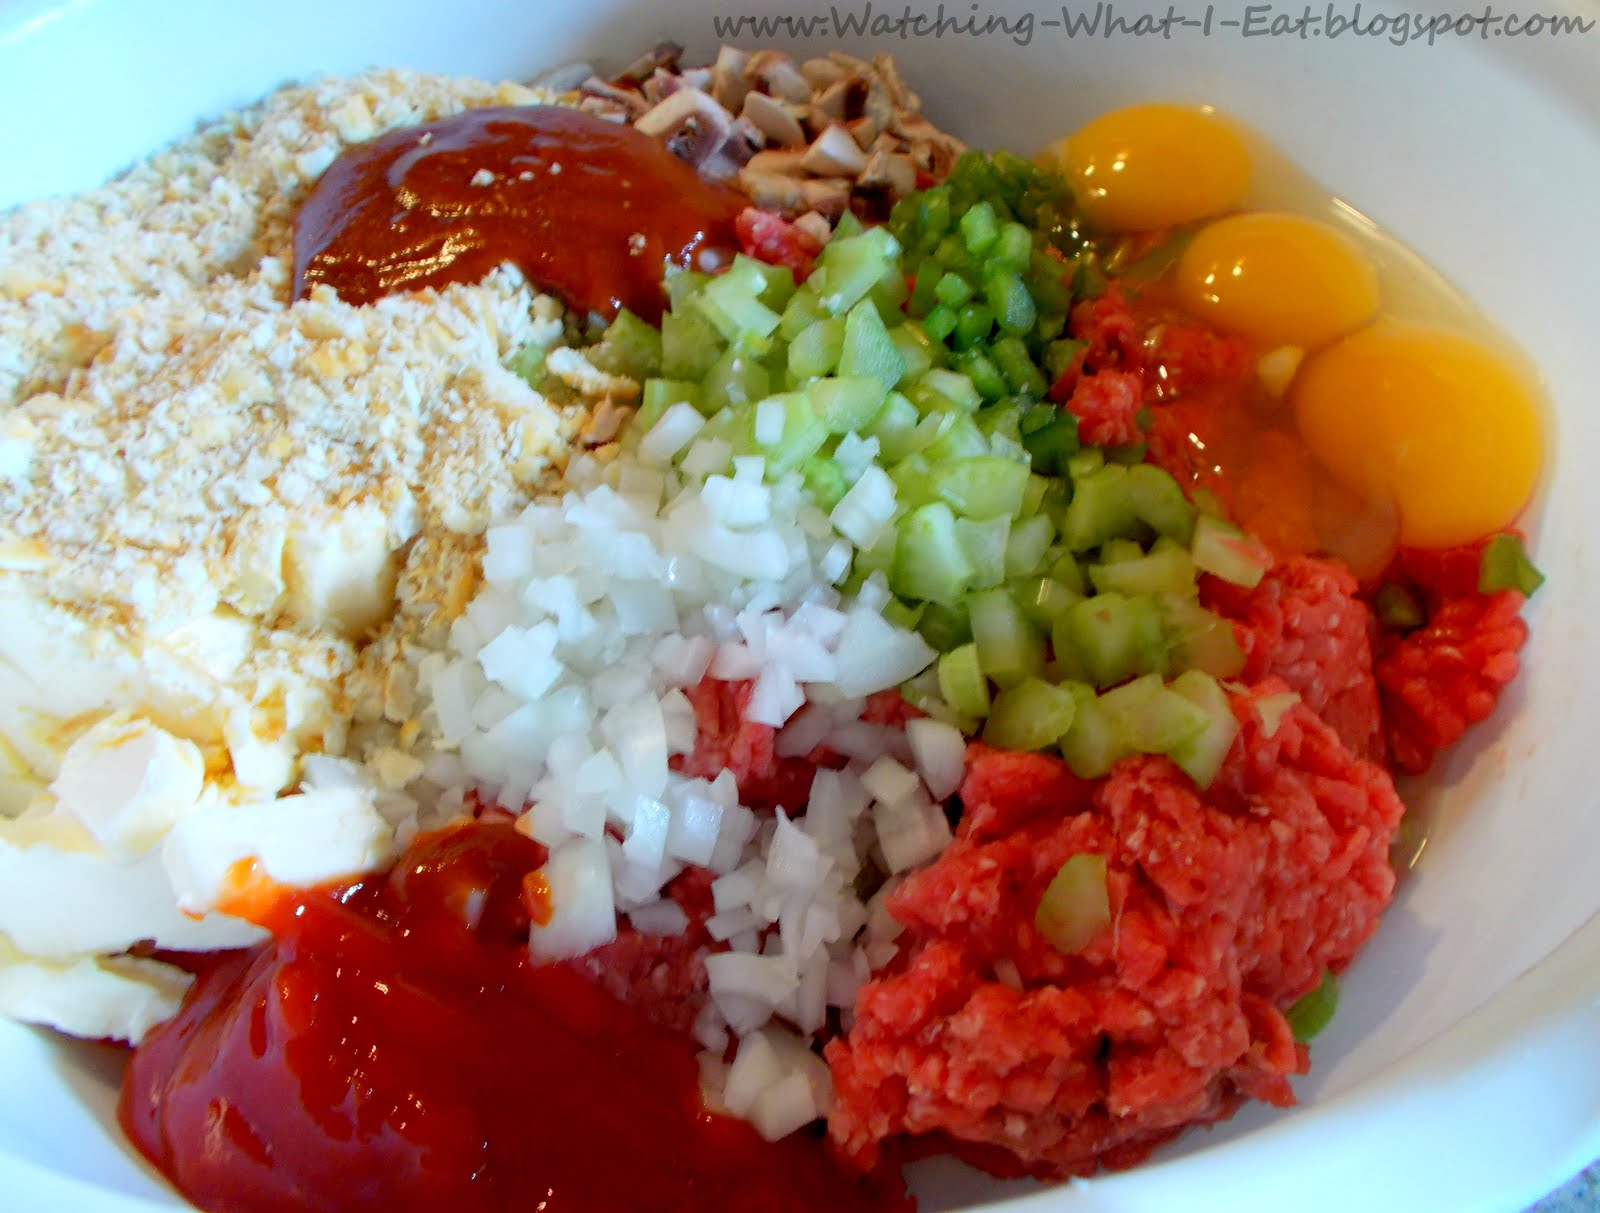 Watching What I Eat: Mike's Classic Meatloaf ~ another old family ...